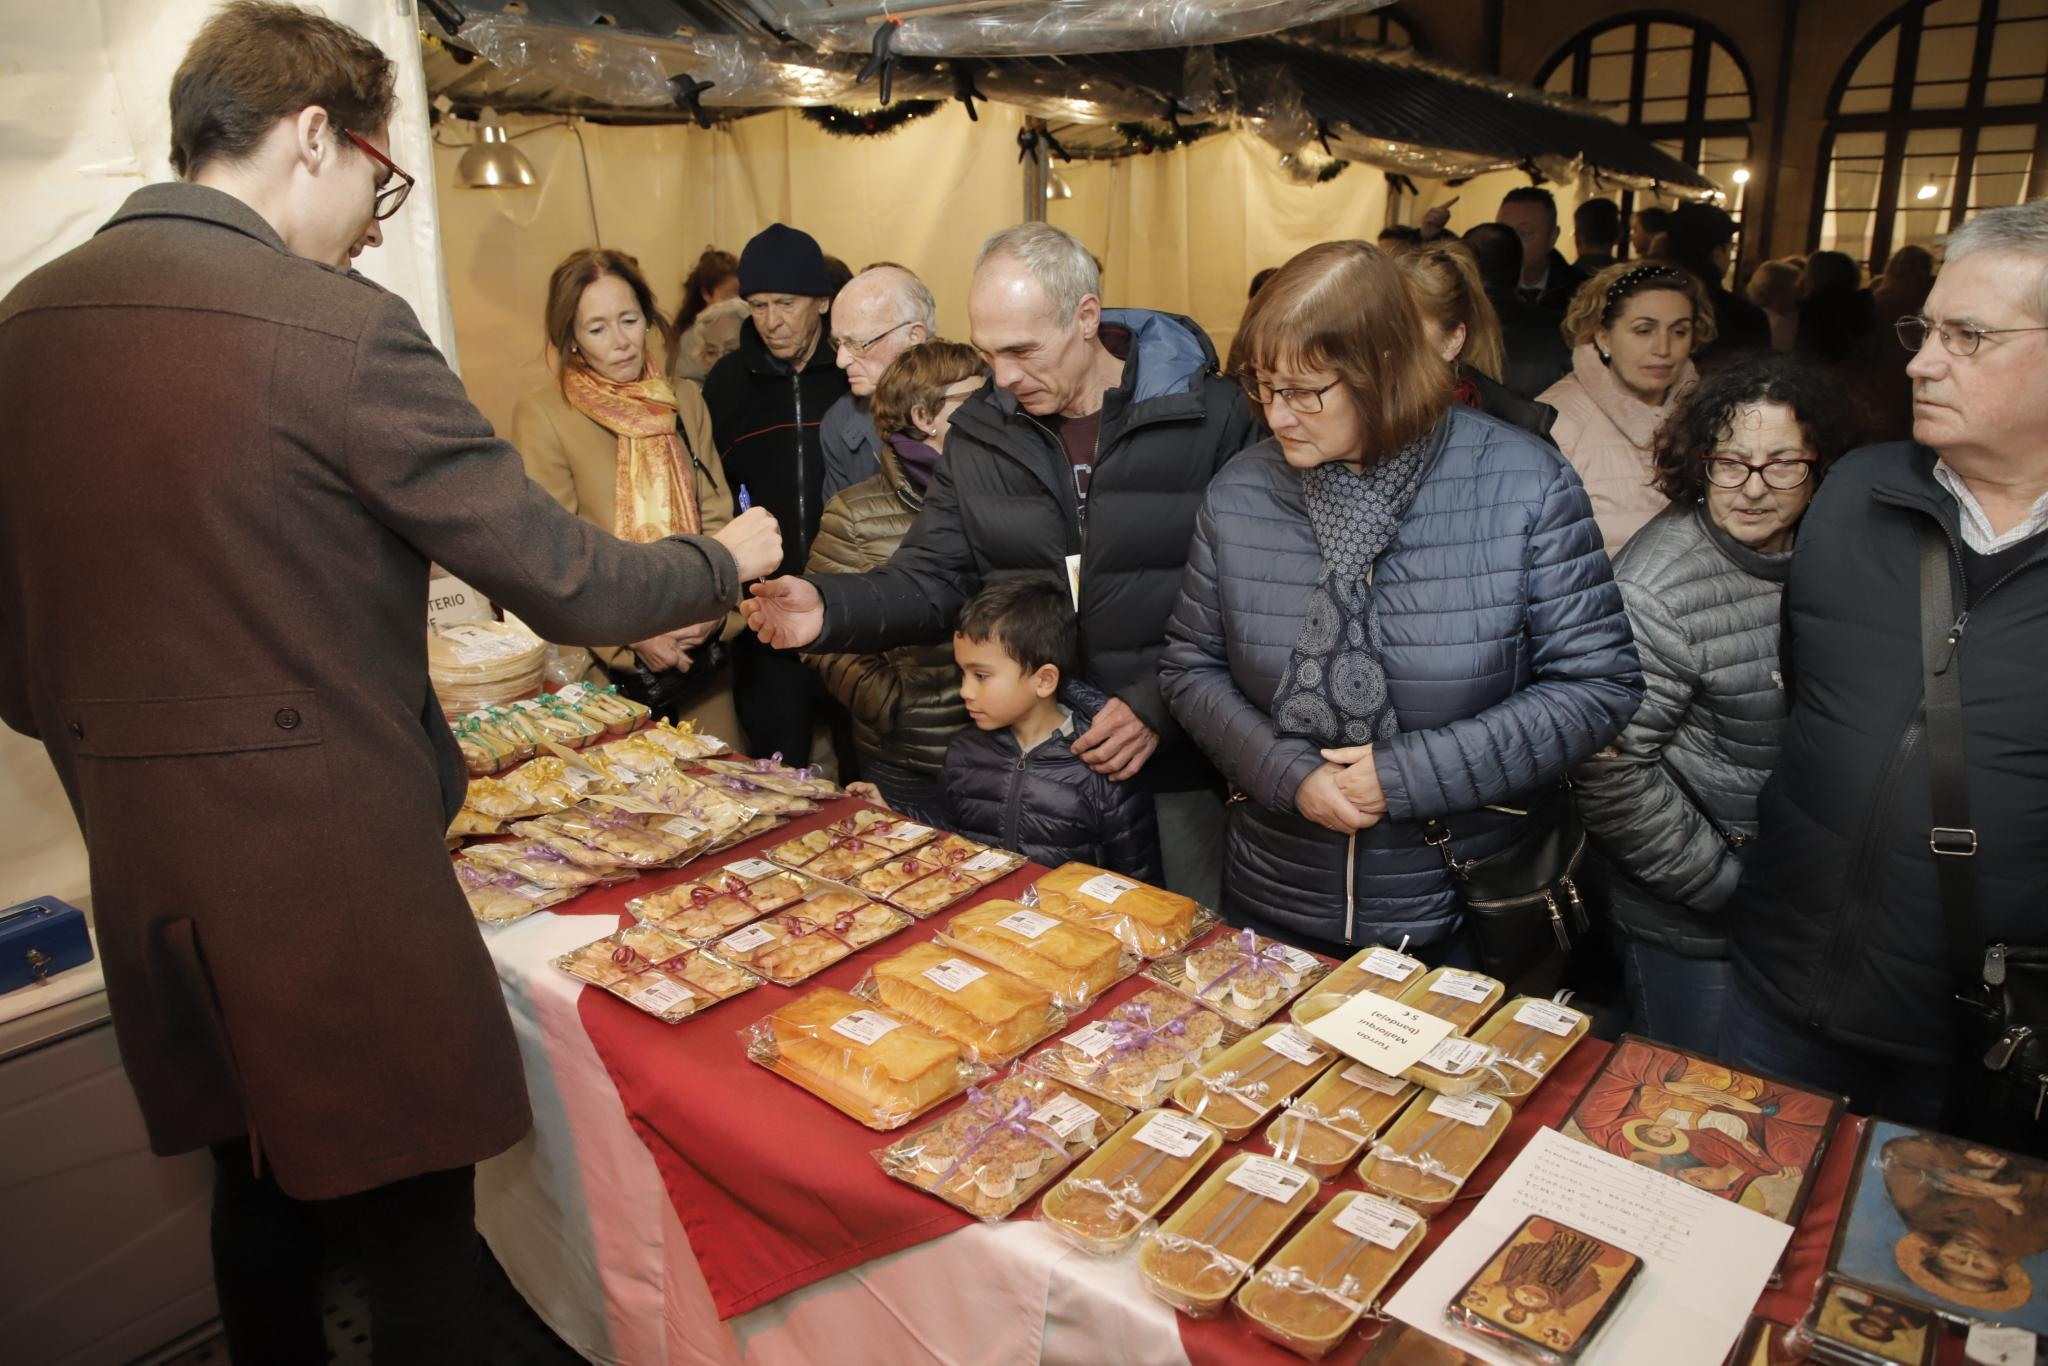 A whole range of irresistible, mouth-watering delicacies like nougat, pastries, sweets, marzipans and jams on offer.